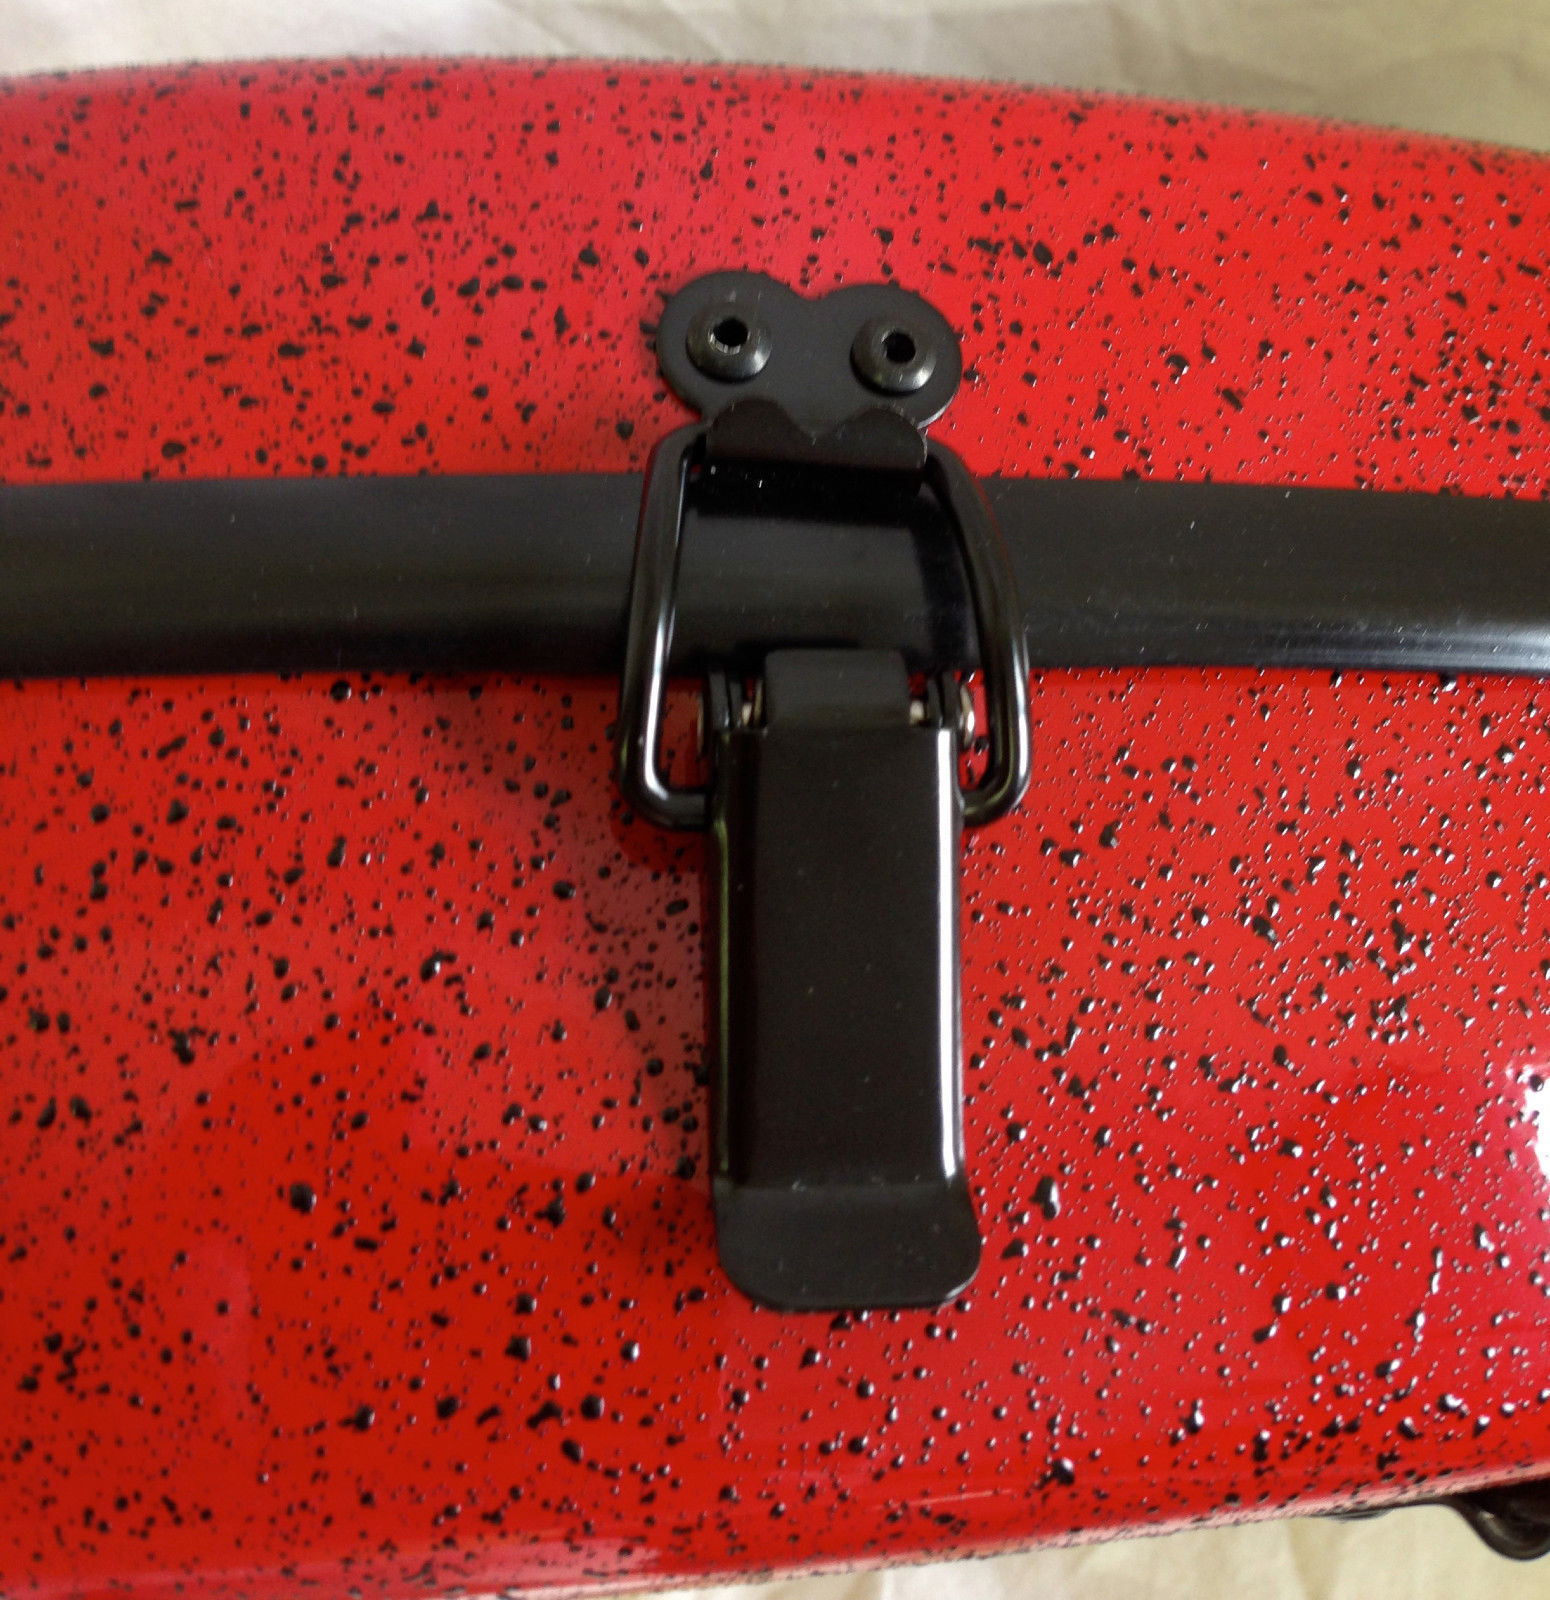 TONARELI Fiberglass Violin 4/4 Case: Red w/ speckled dots NEW